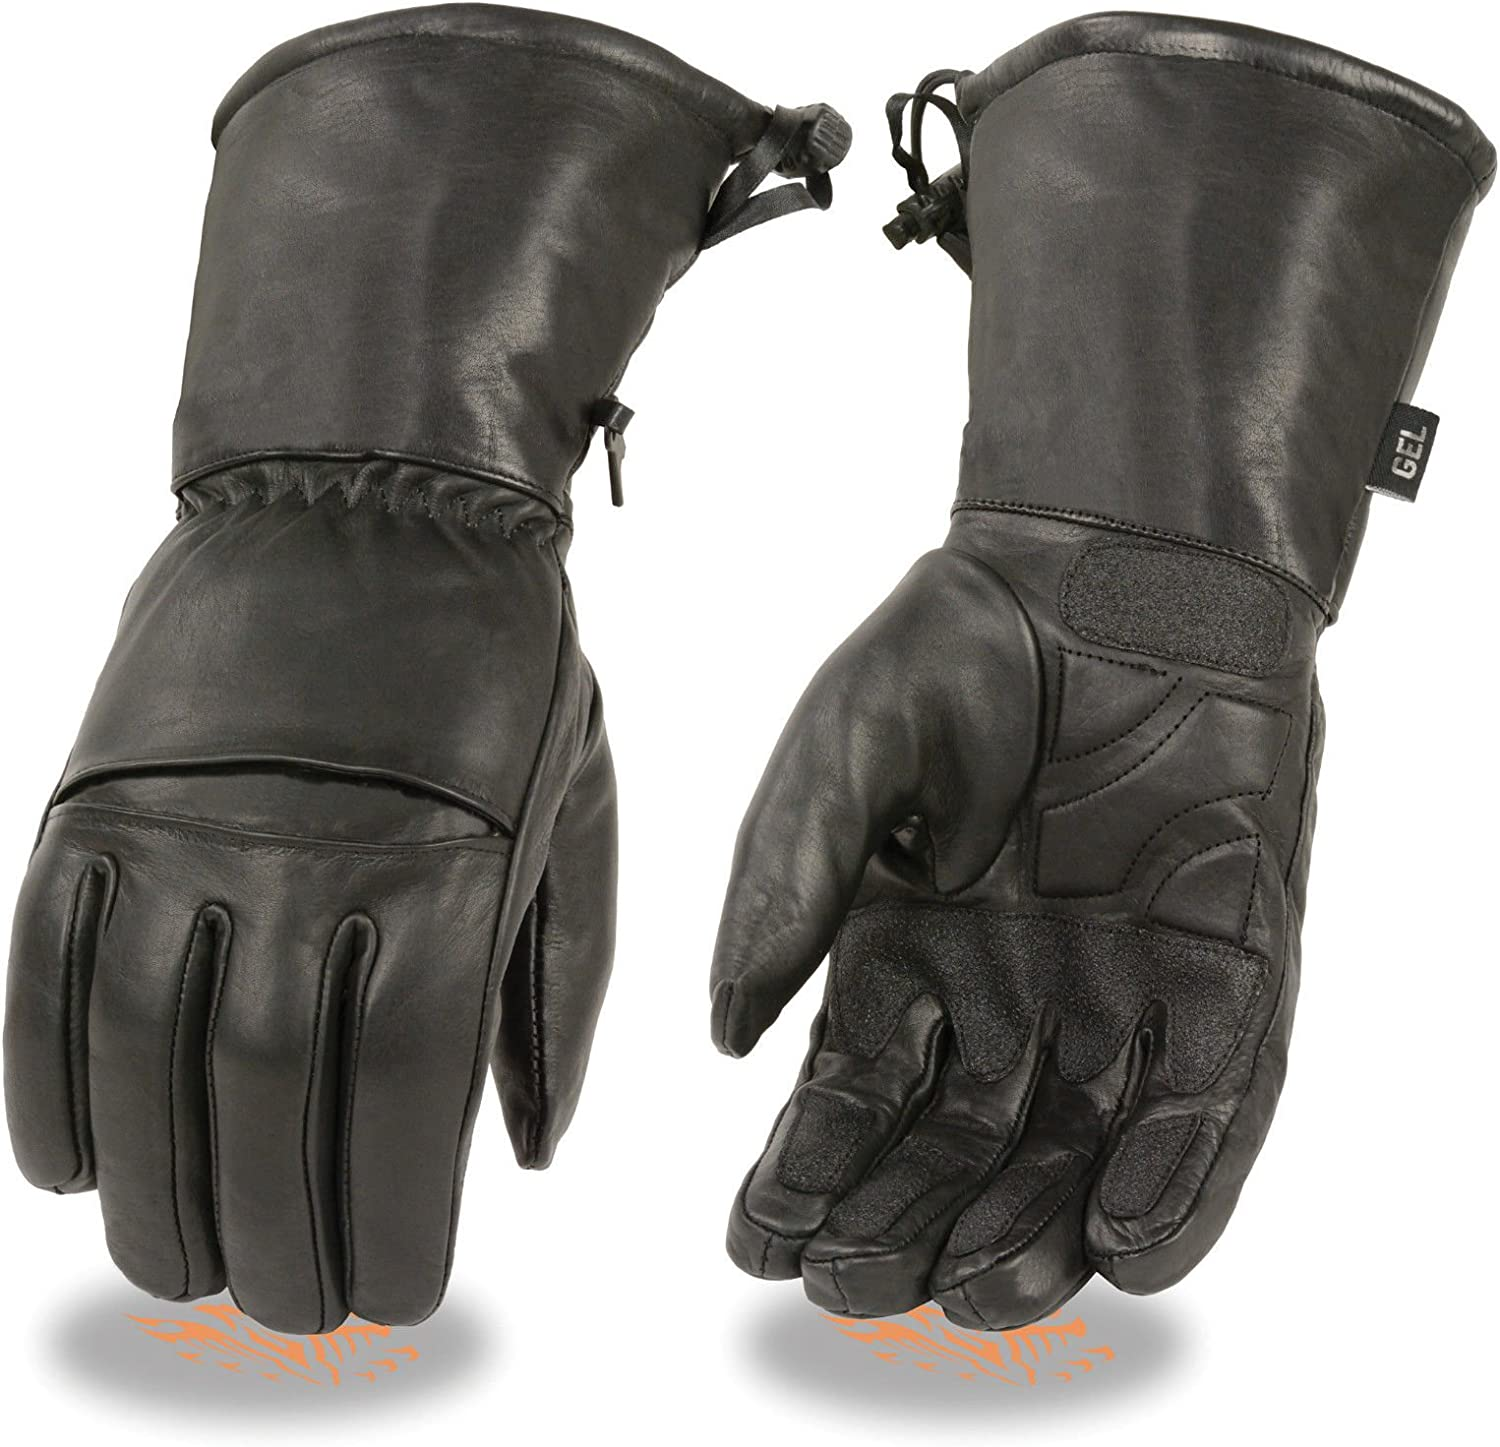 35% OFF Shaf Motorcycle Men's Shipping included Long Real Guantlet Gel Palm Leather Gloves